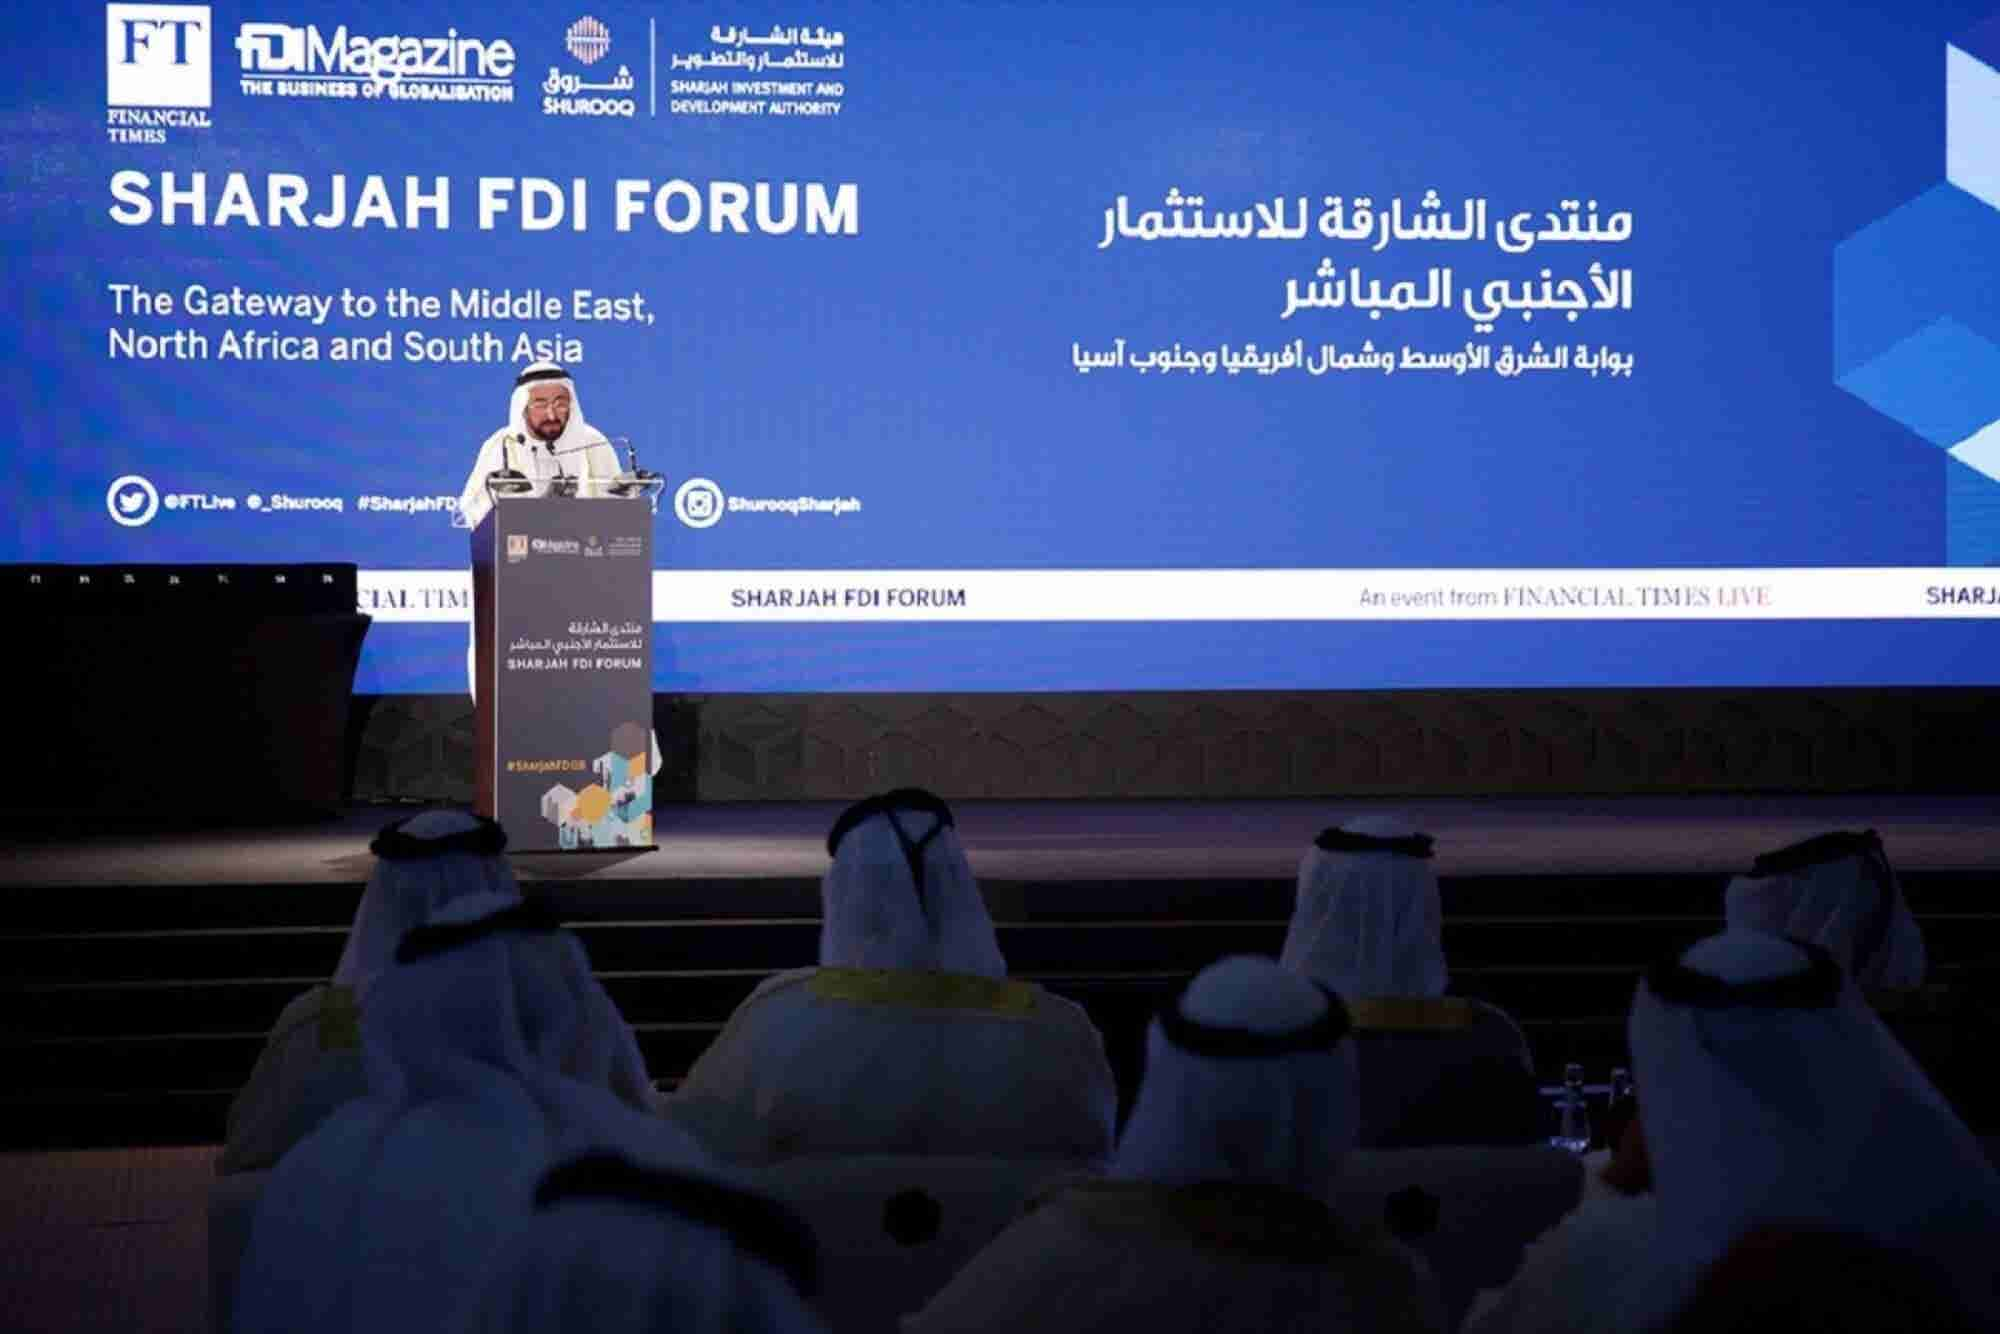 Sharjah FDI Forum 2017 Focuses On The Fourth Industrial Revolution